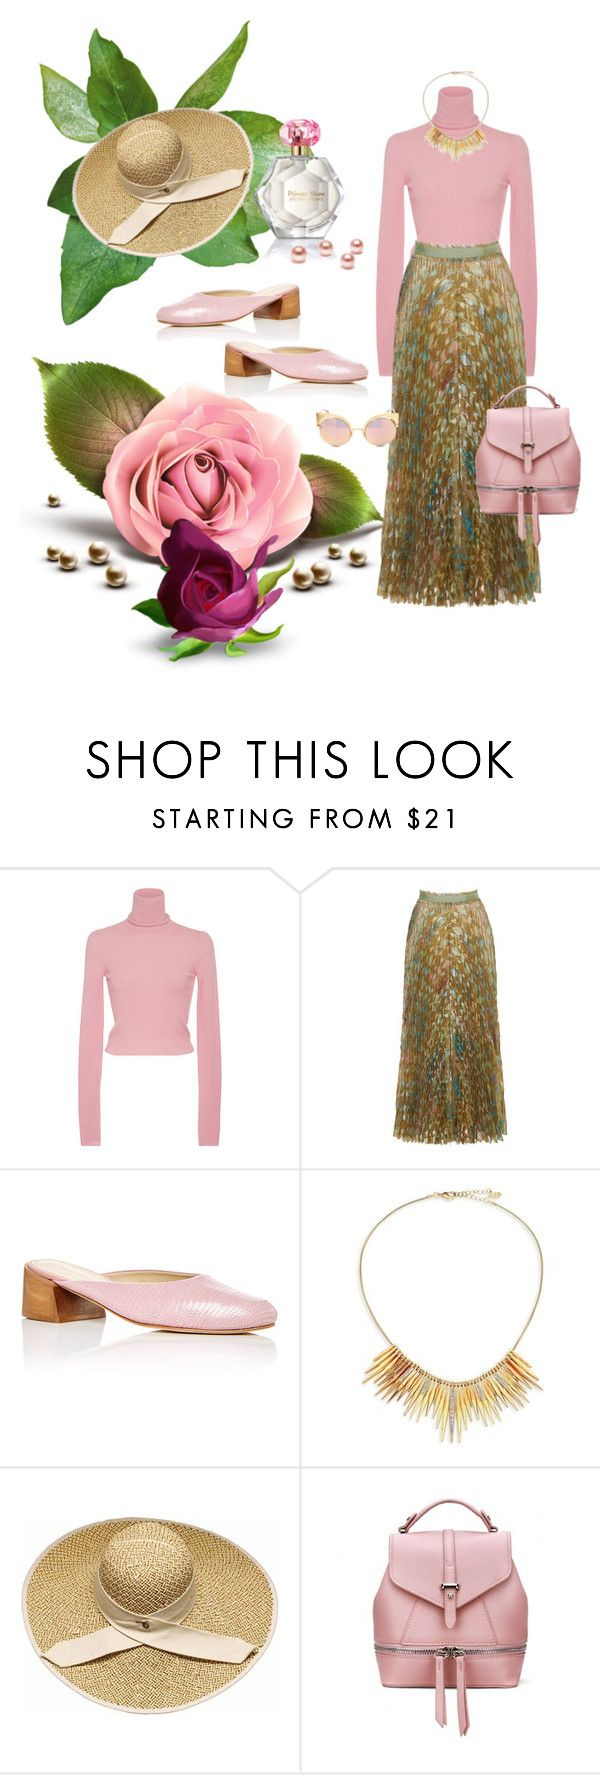 """Next Season Now"" by jacque-reid ❤ liked on Polyvore featuring A.L.C., Roberto Cavalli, Mari Giudicelli, ABS by Allen Schwartz, Britney Spears and Fendi"